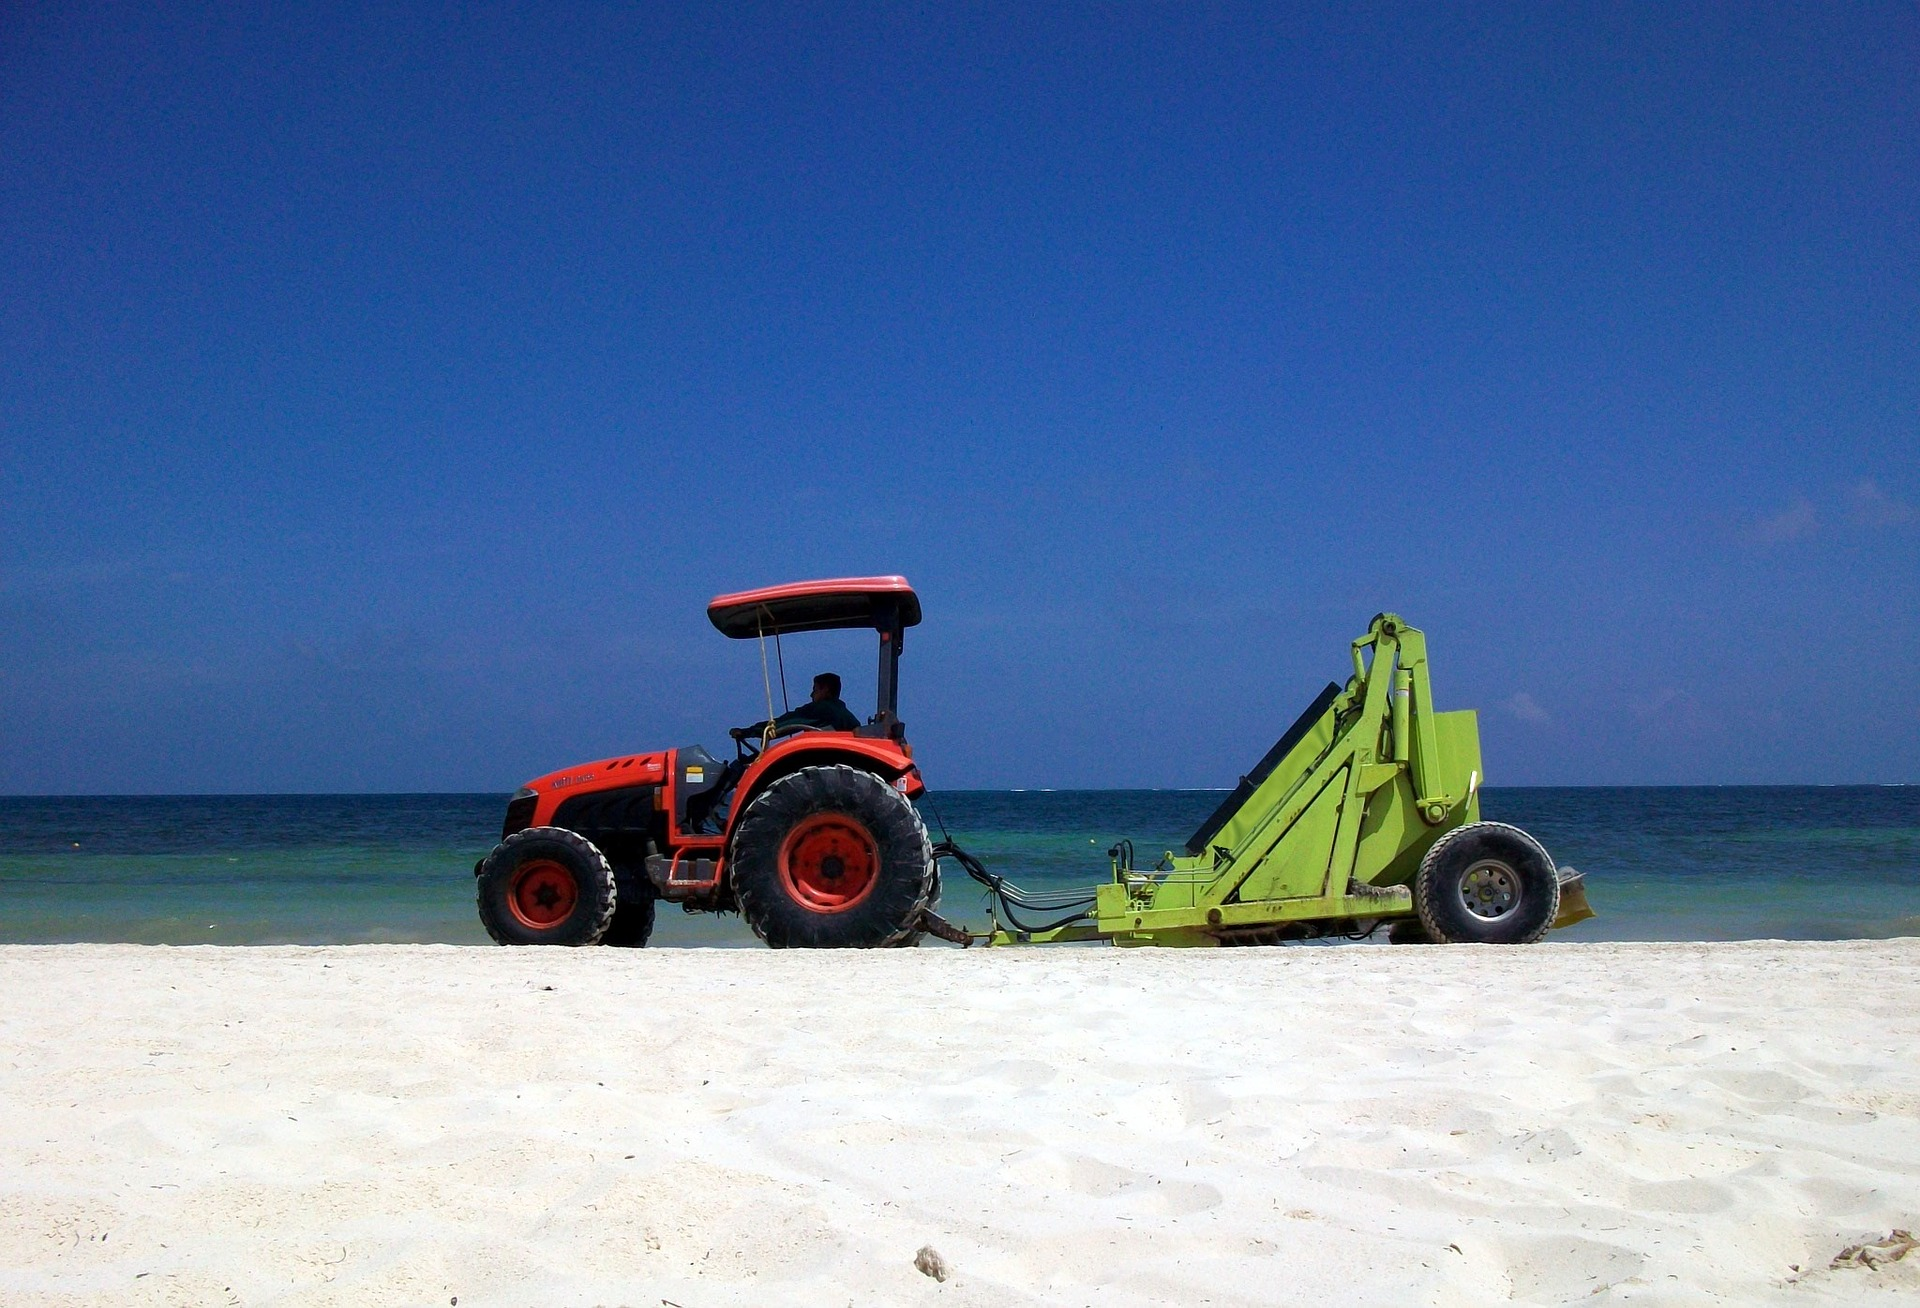 PUBLIC WORKS AND BEACH MAINTENANCE PERSONNEL